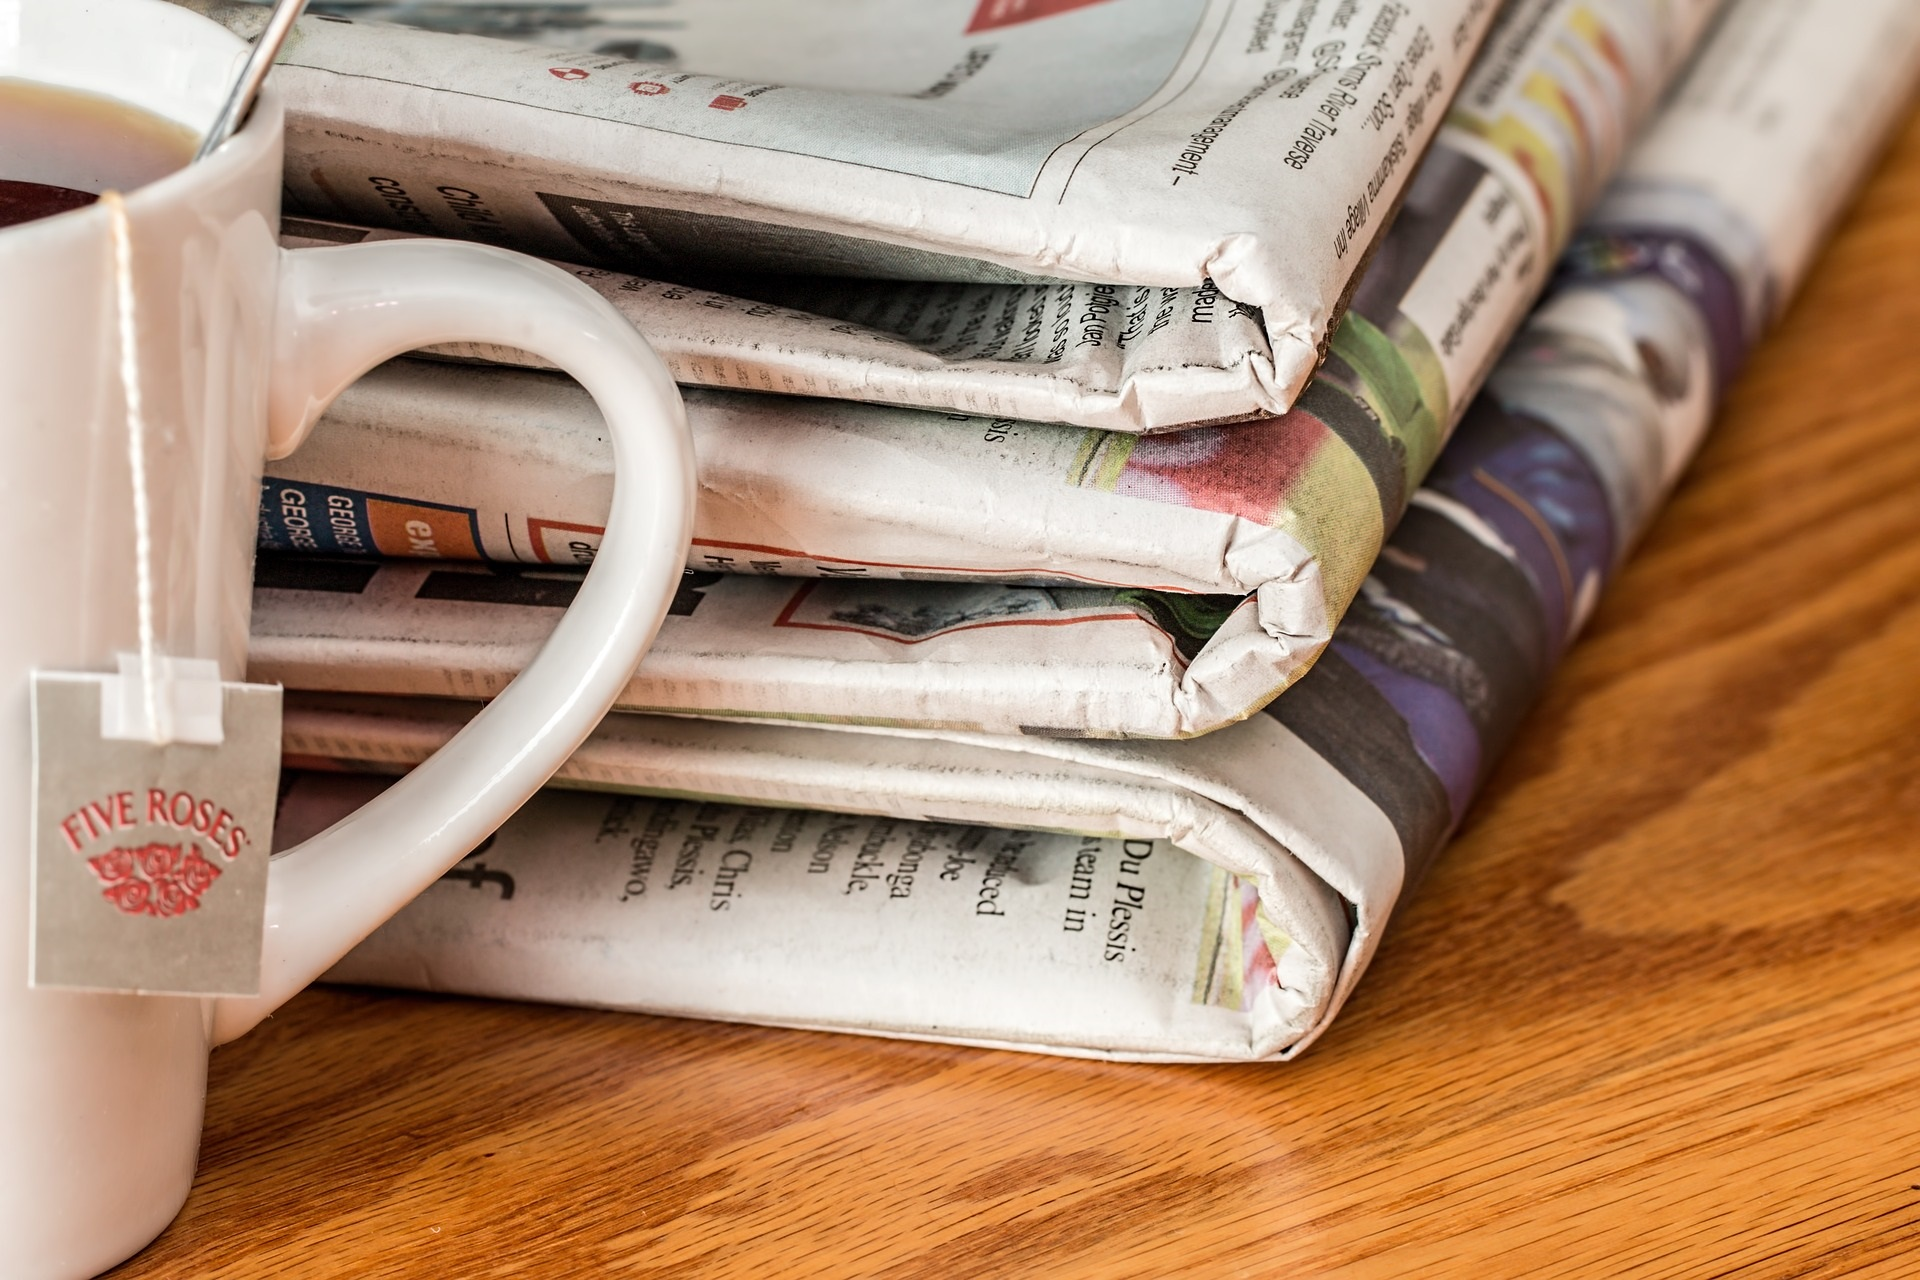 Newspapers which need good PR content